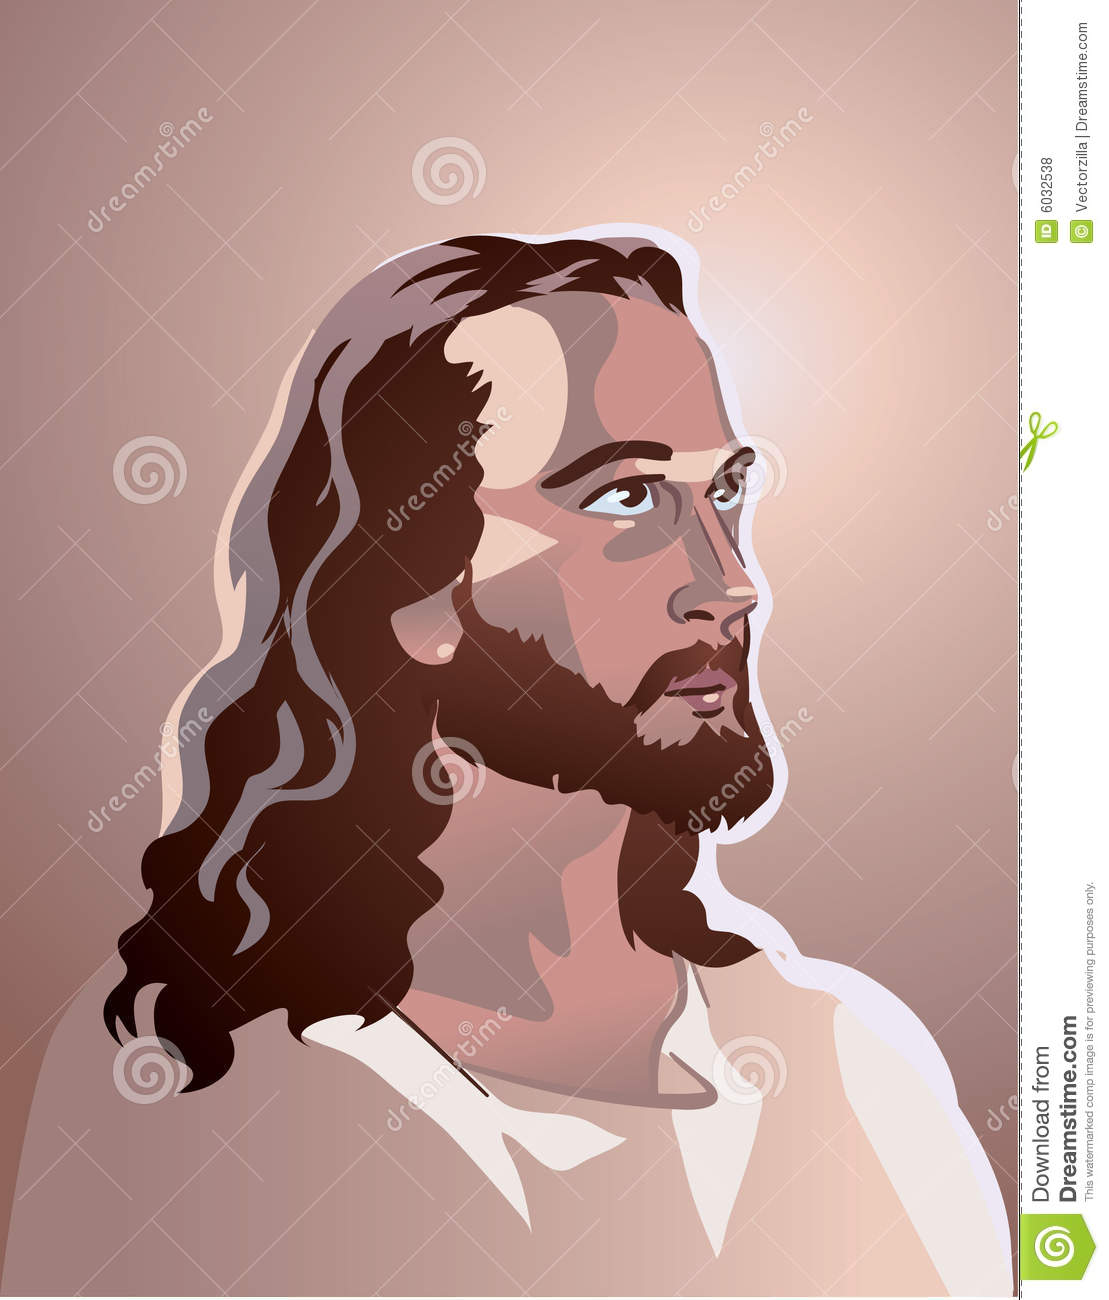 Vector Jesus Stock Illustrations – 16,716 Vector Jesus Stock ...